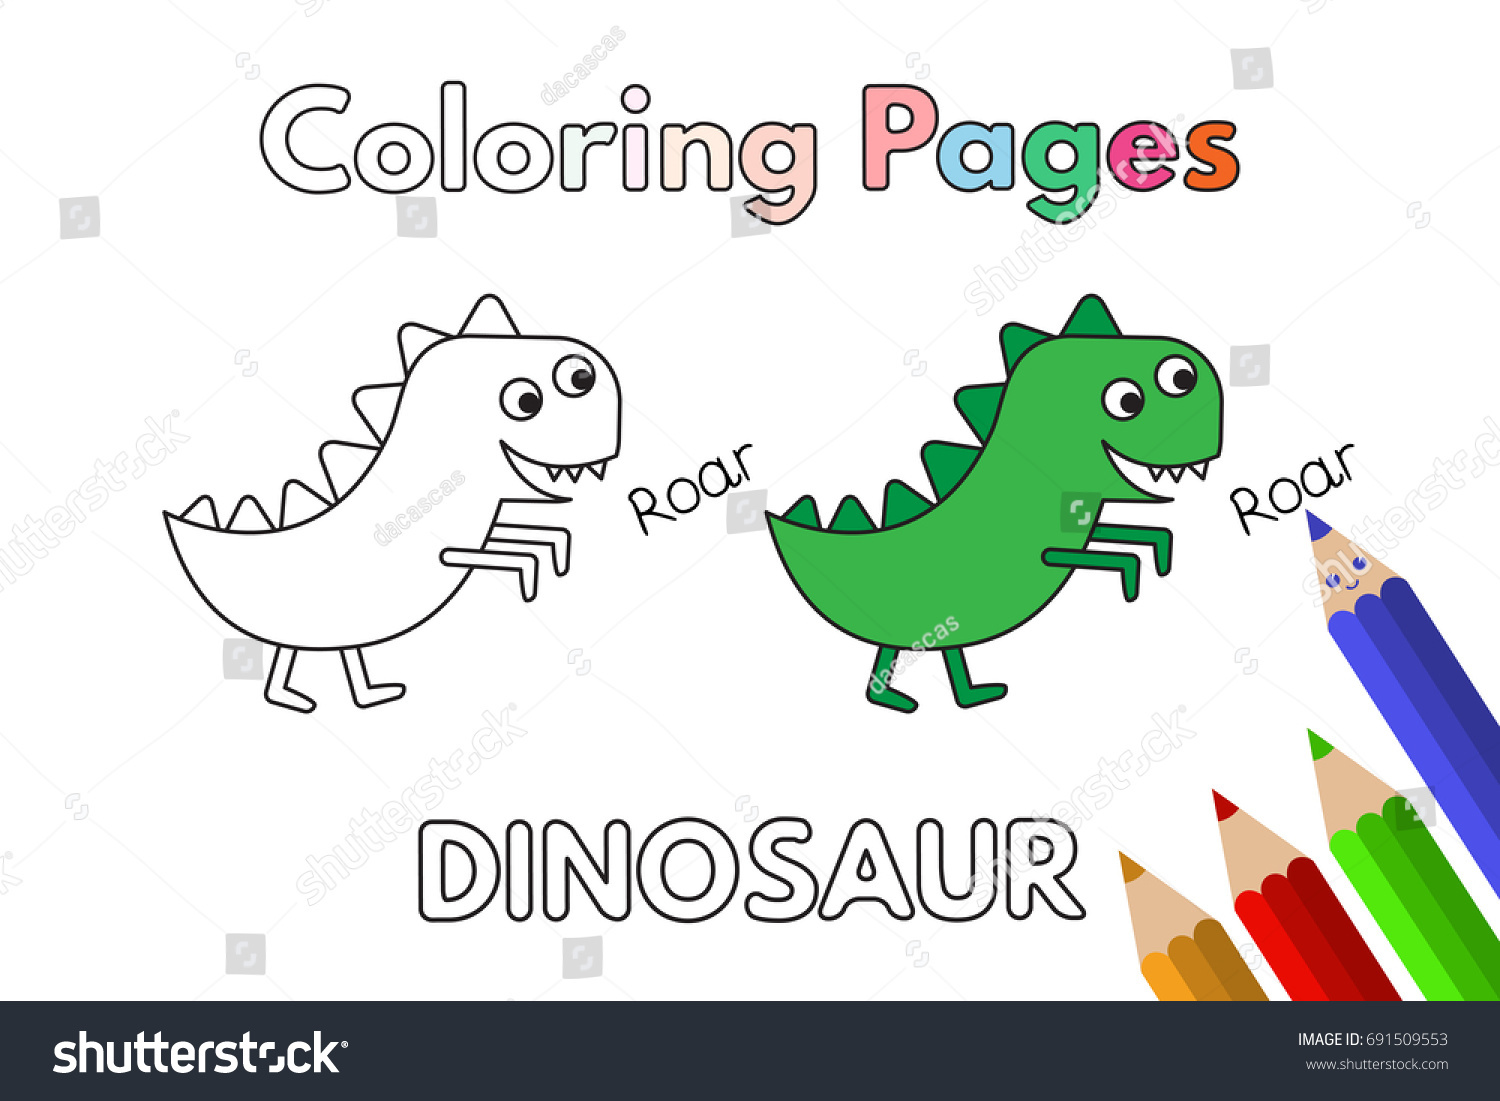 Cartoon Dinosaur Illustration Vector Coloring Book Stock Vector ...